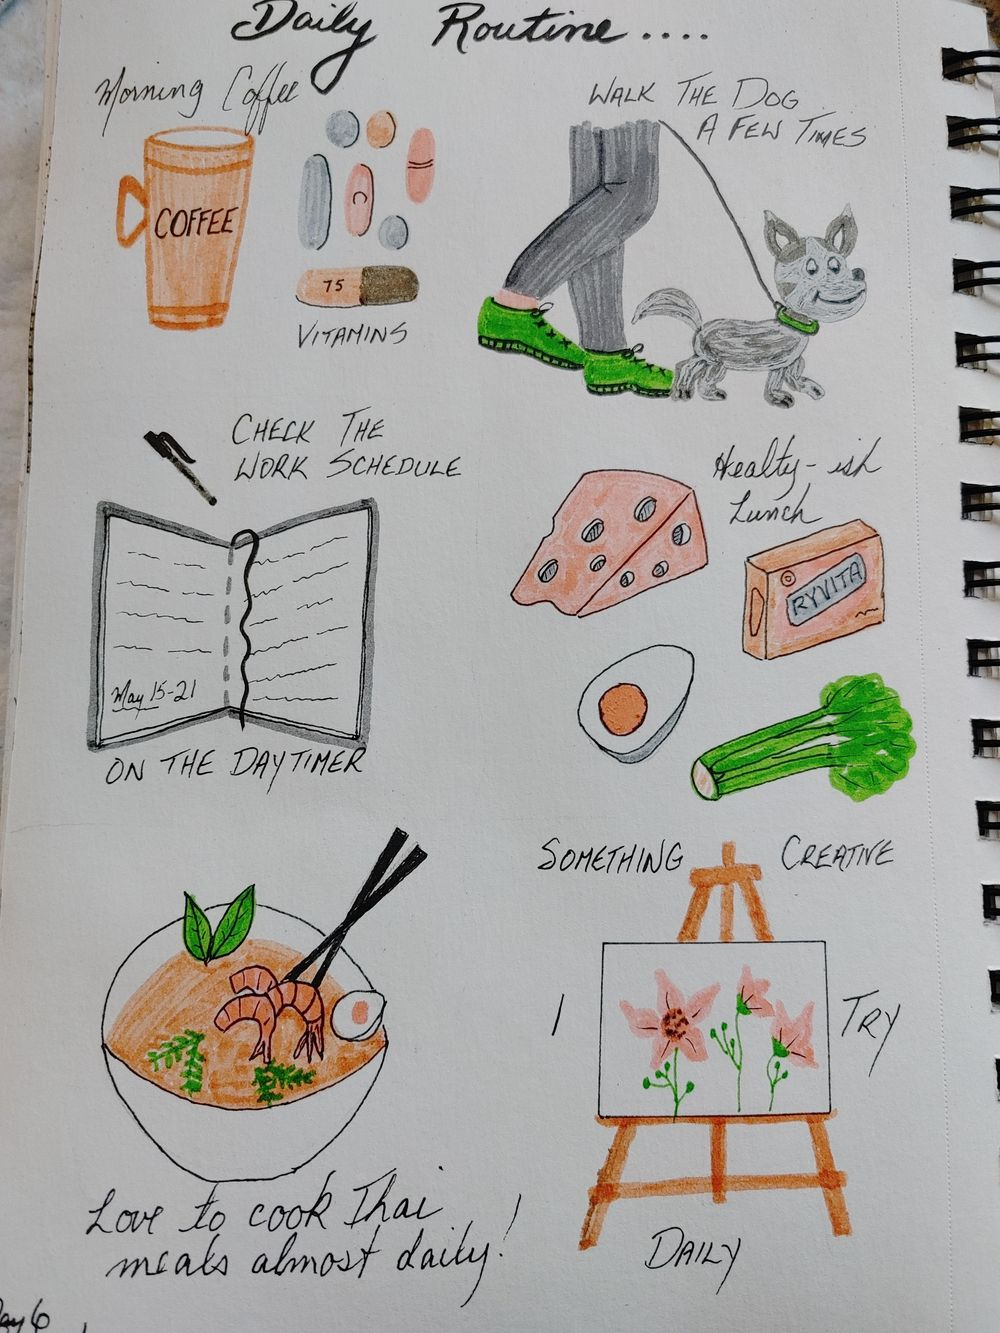 1st Time Journaling Attempt- 14 Day Challenge - image 6 - student project